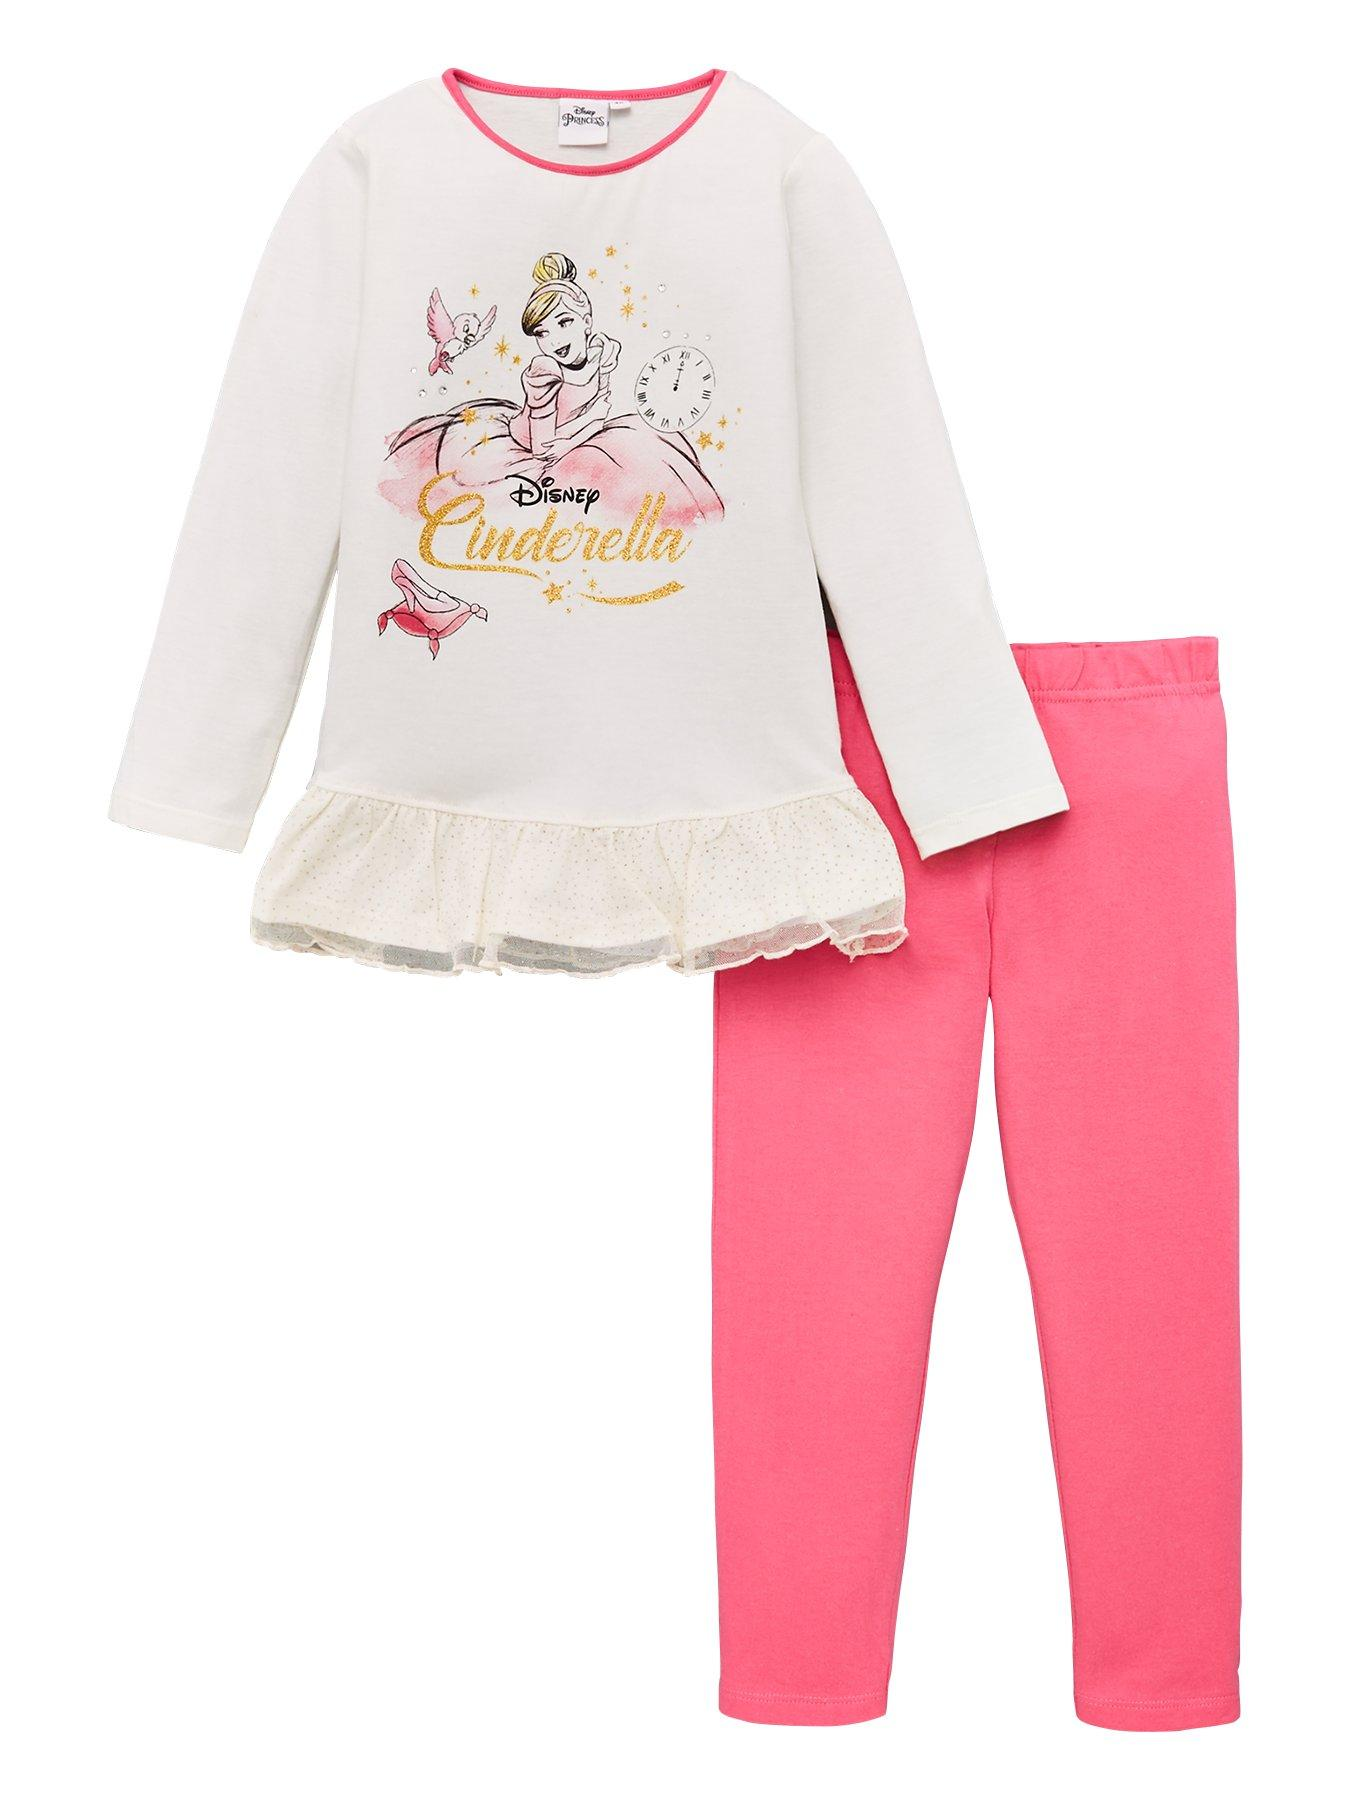 9-10 YEARS NEW GIRLS OFFICIAL DISNEY TINKERBELL PYJAMAS AGES